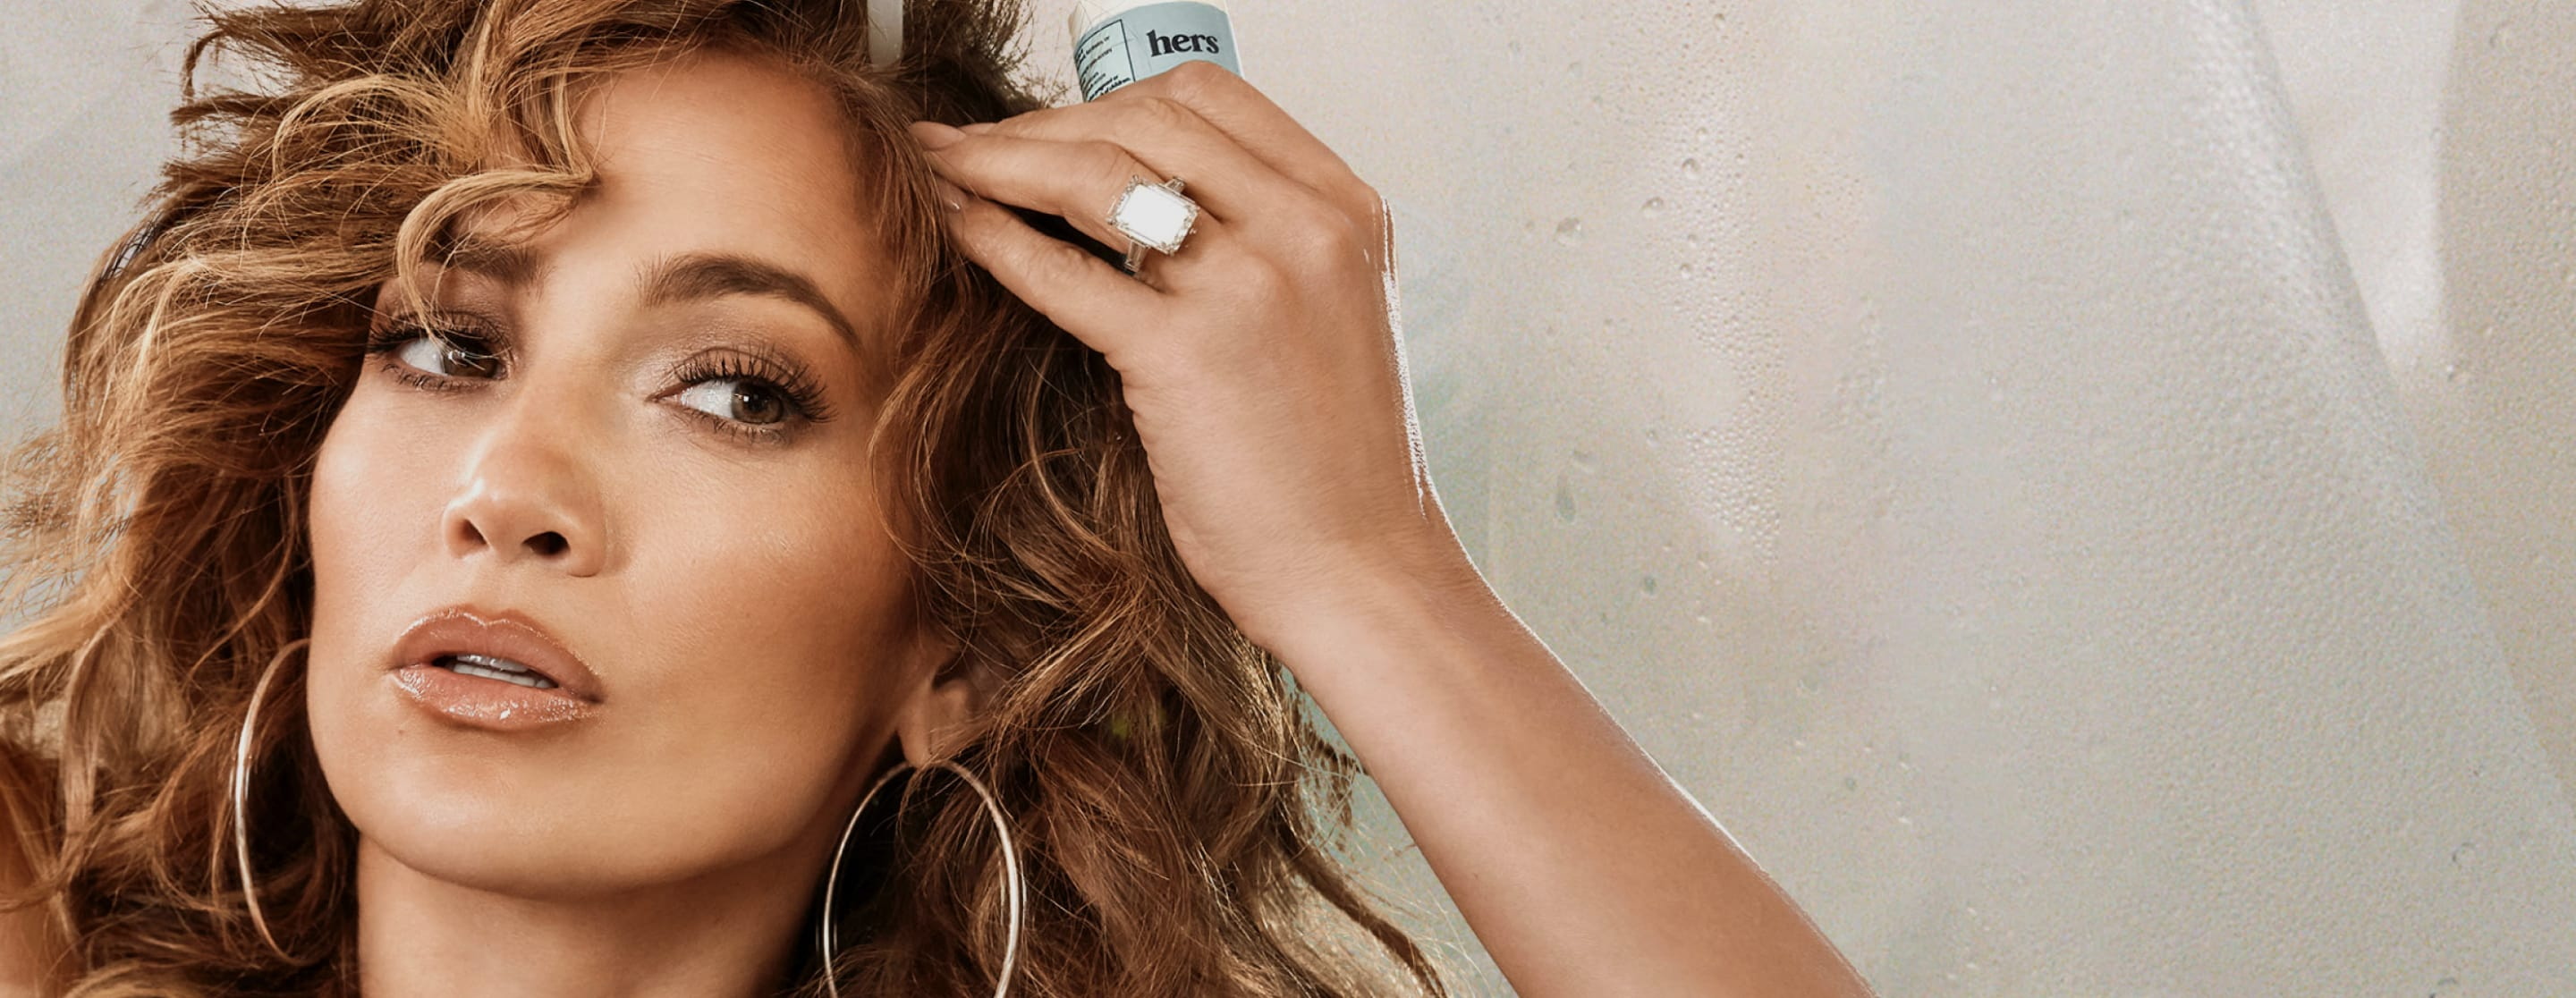 Jlo holding hair product